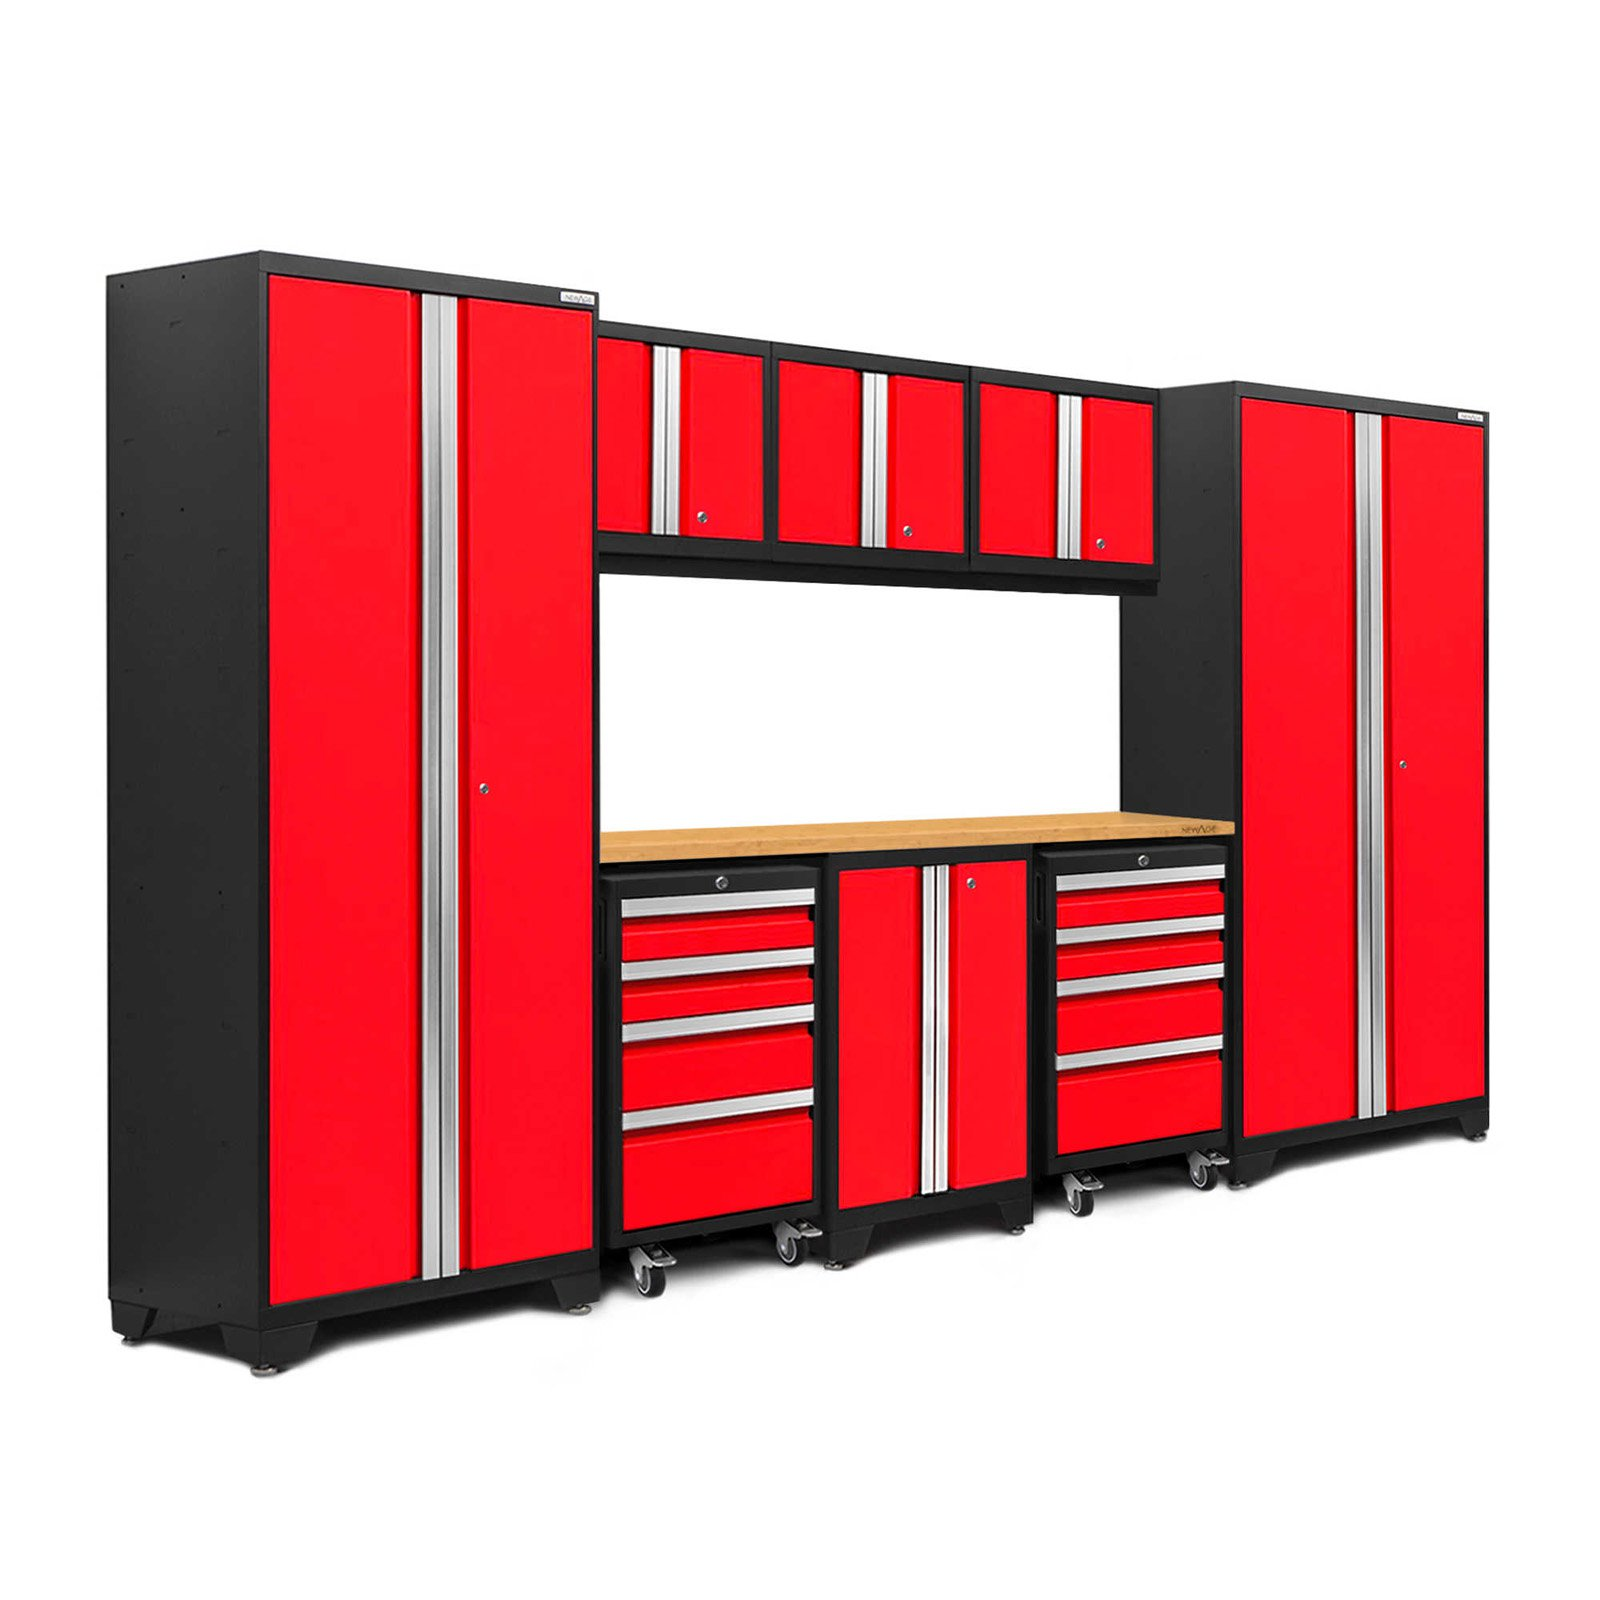 NewAge Products Bold 3.0 9 Piece Garage Cabinet System I